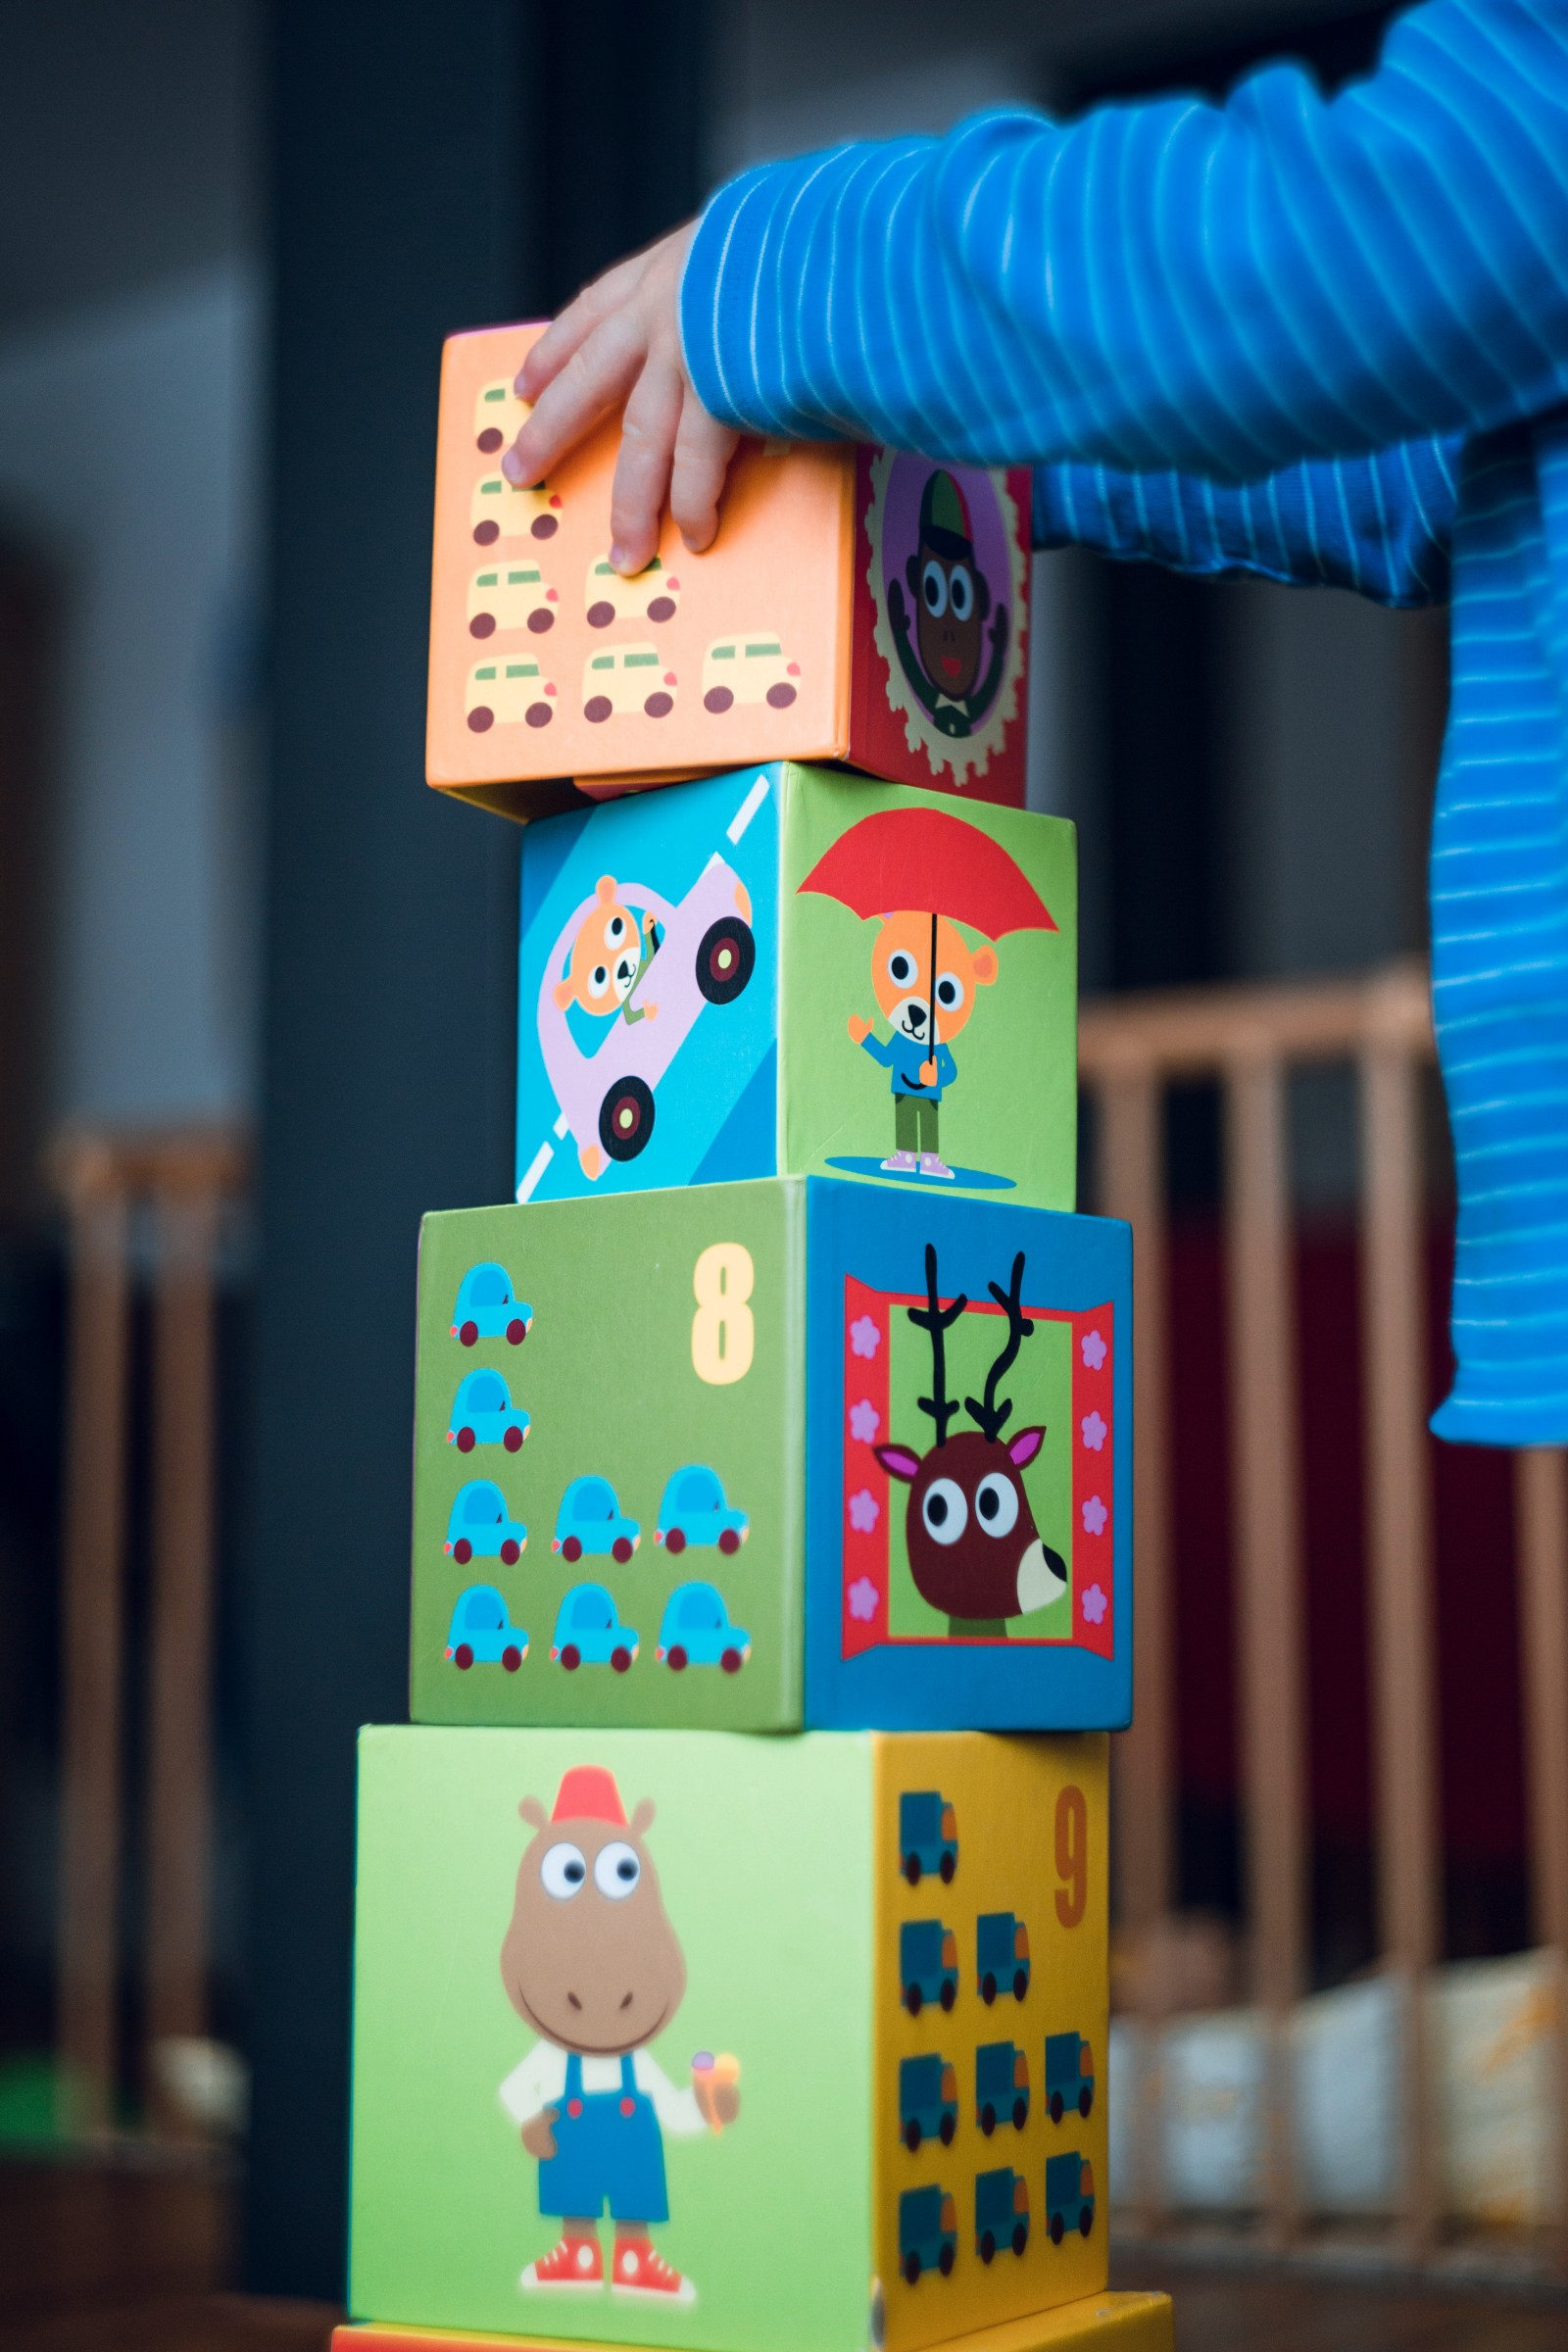 Kids Learn Math Easily When They Control Their Own Learning